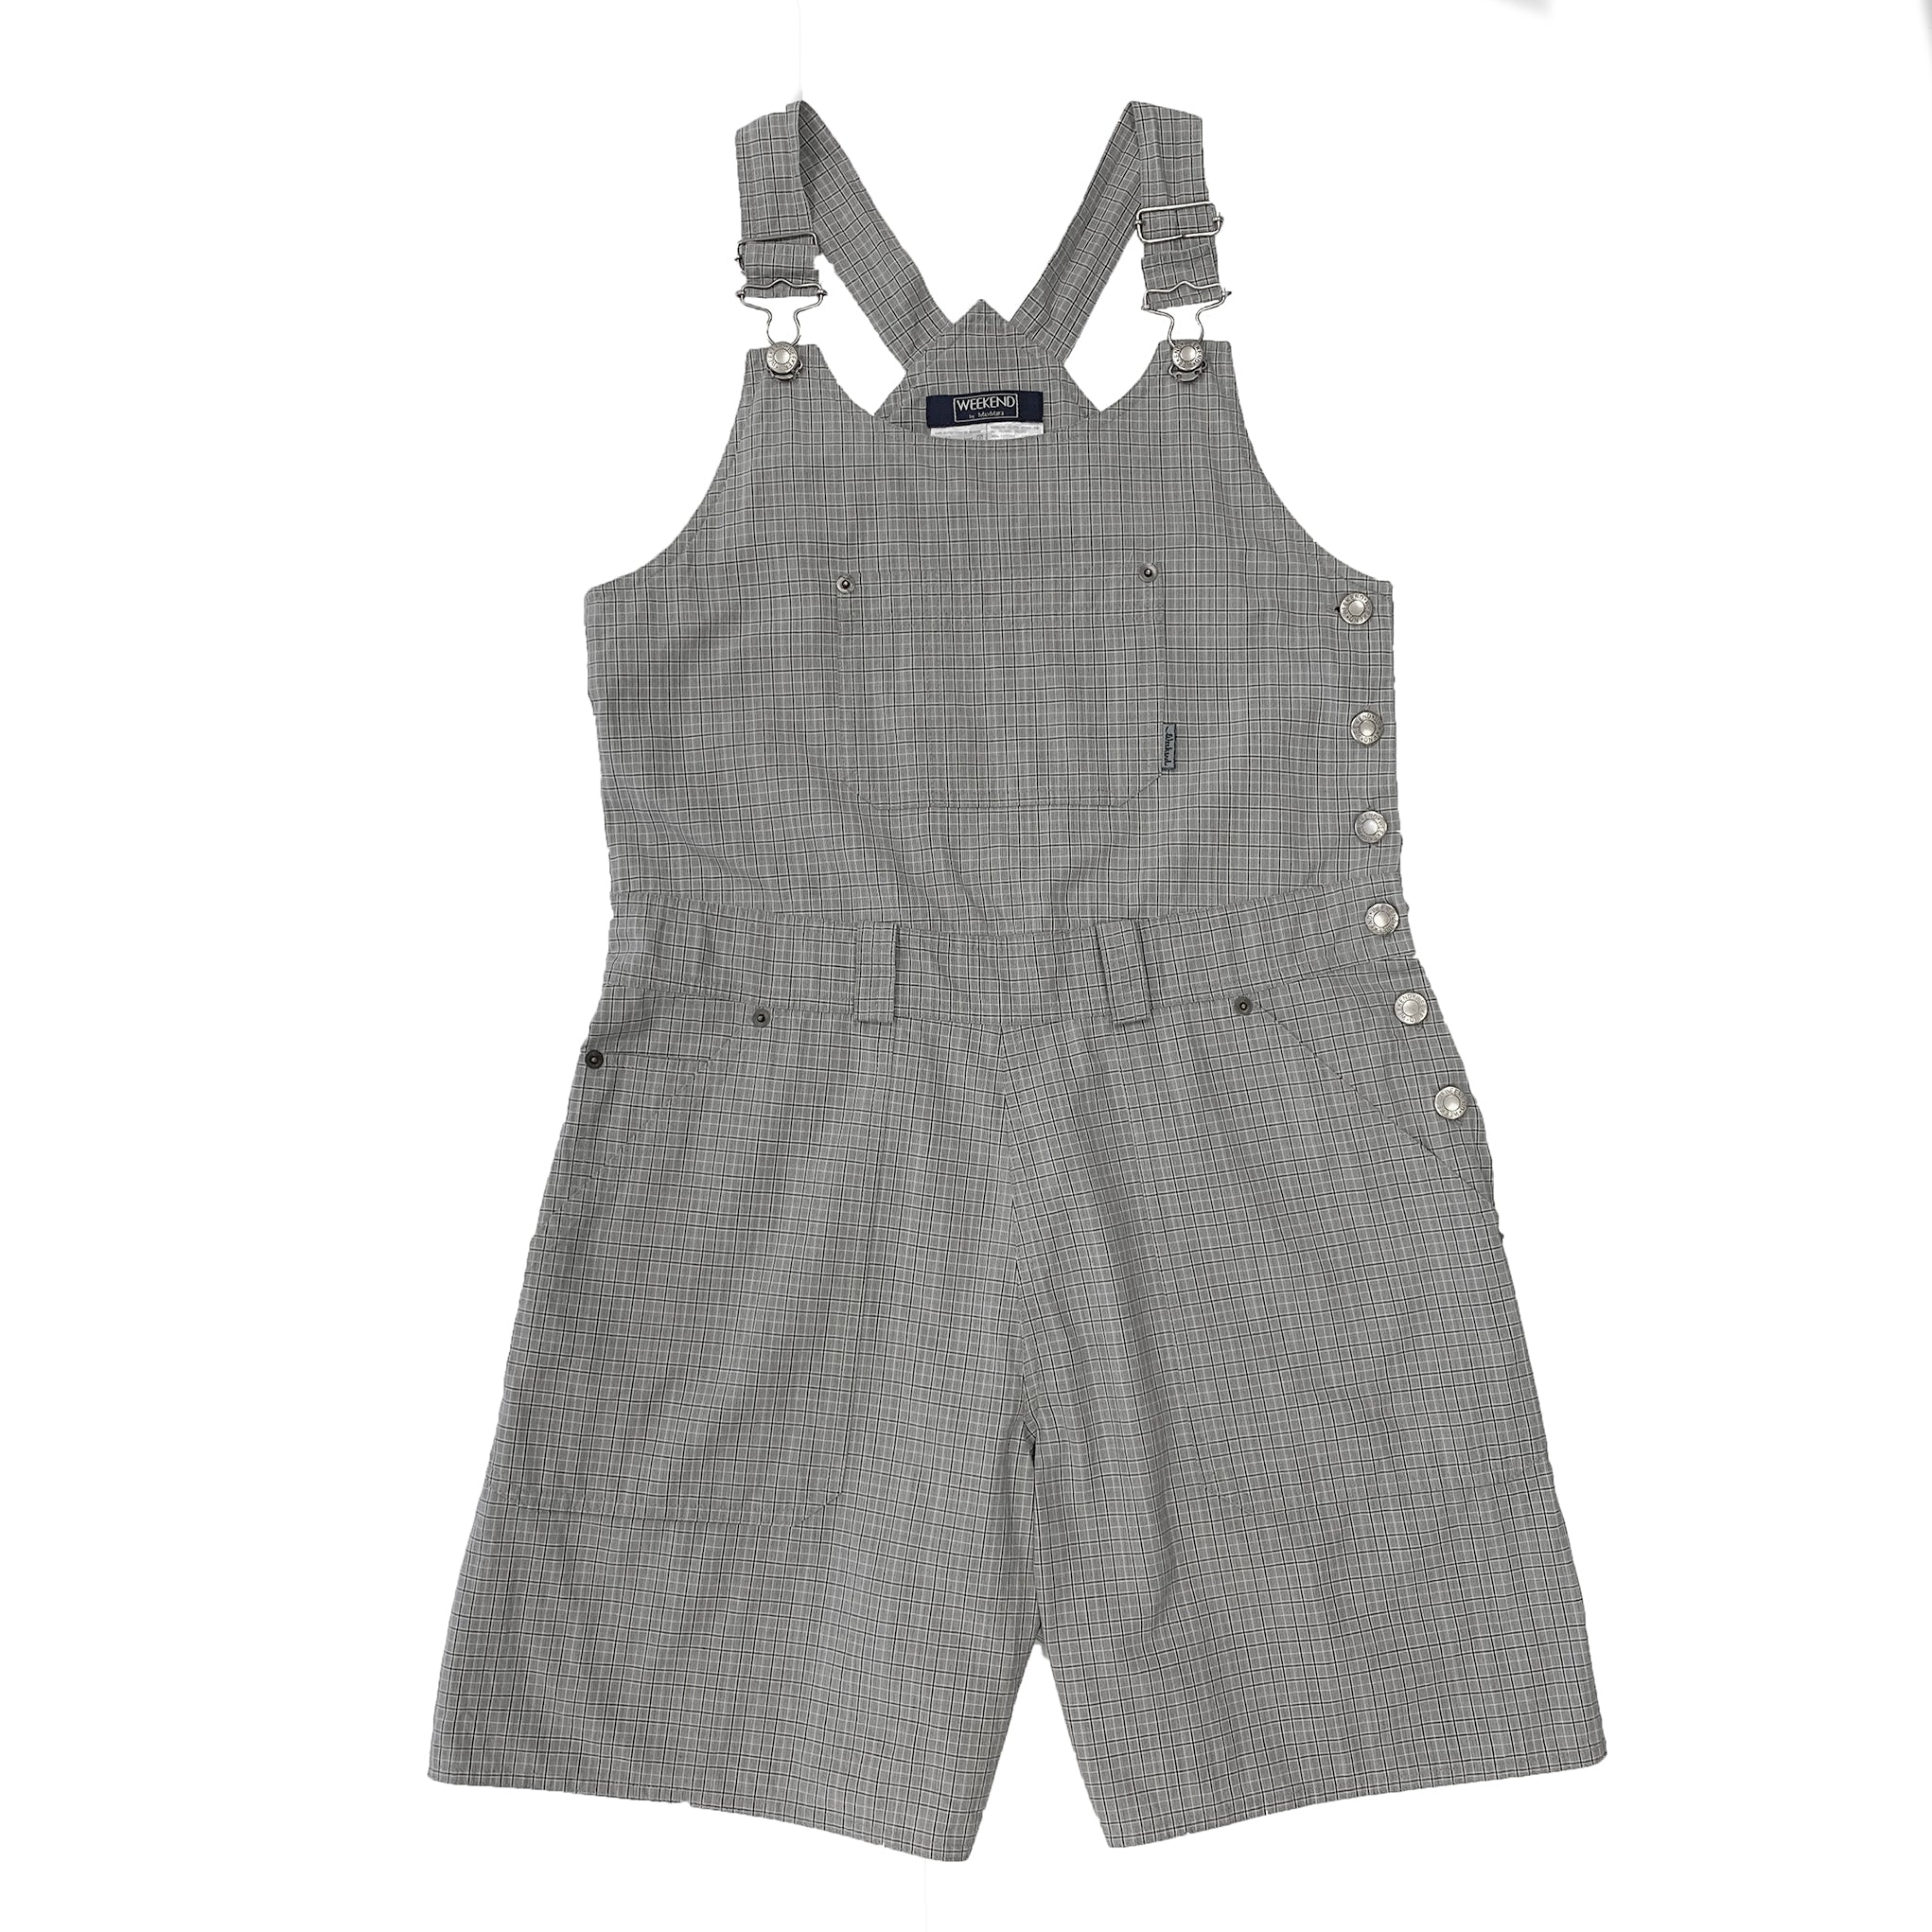 Weekend by MaxMara Checkered Gray Romper Jumpsuit